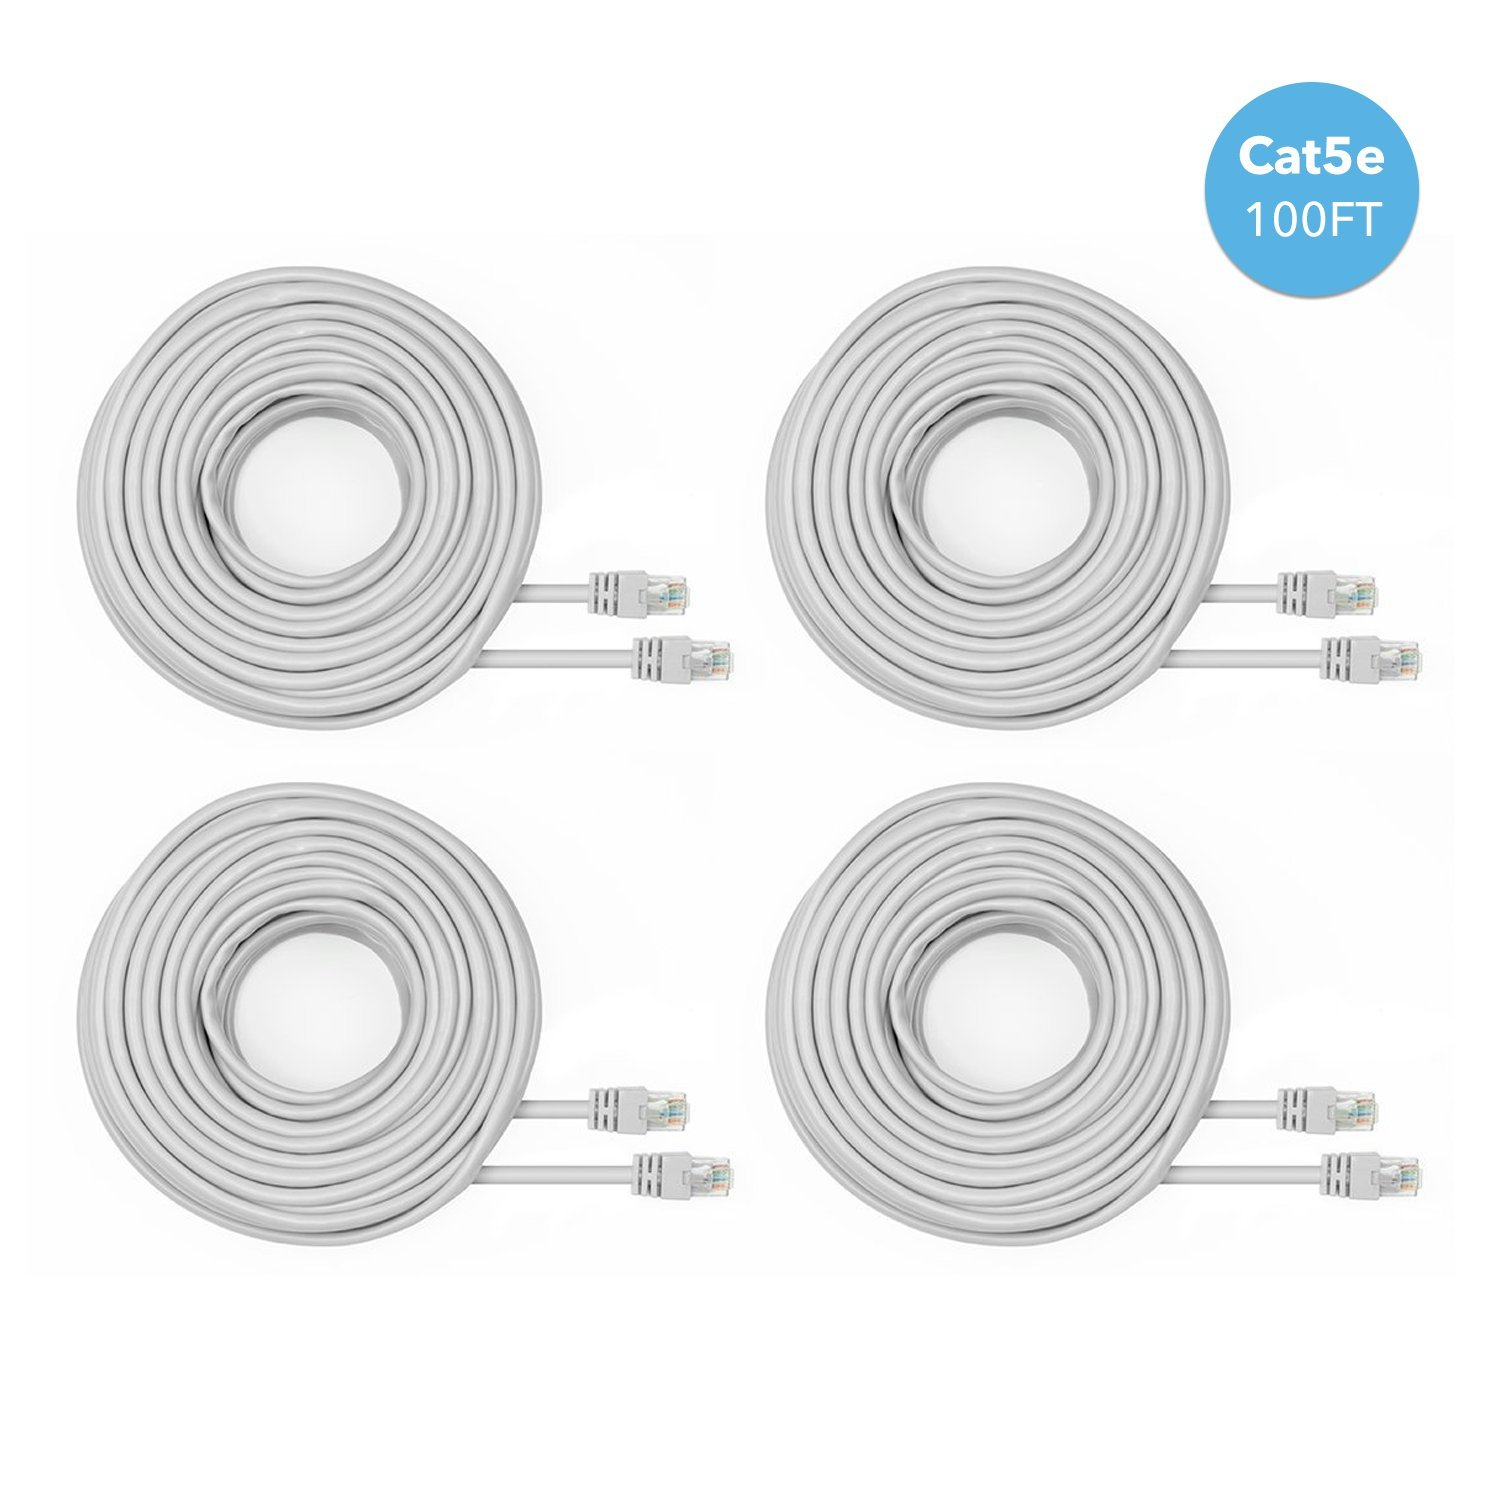 Amcrest Cat5e Cable 100ft Ethernet Cable Internet High Speed Network Cable for POE Security Cameras, Smart TV, PS4, Xbox, Nintendo Switch, Router, Laptop, Computer, Home, 4-Pack (4PACK-CAT5ECABLE100) by Amcrest